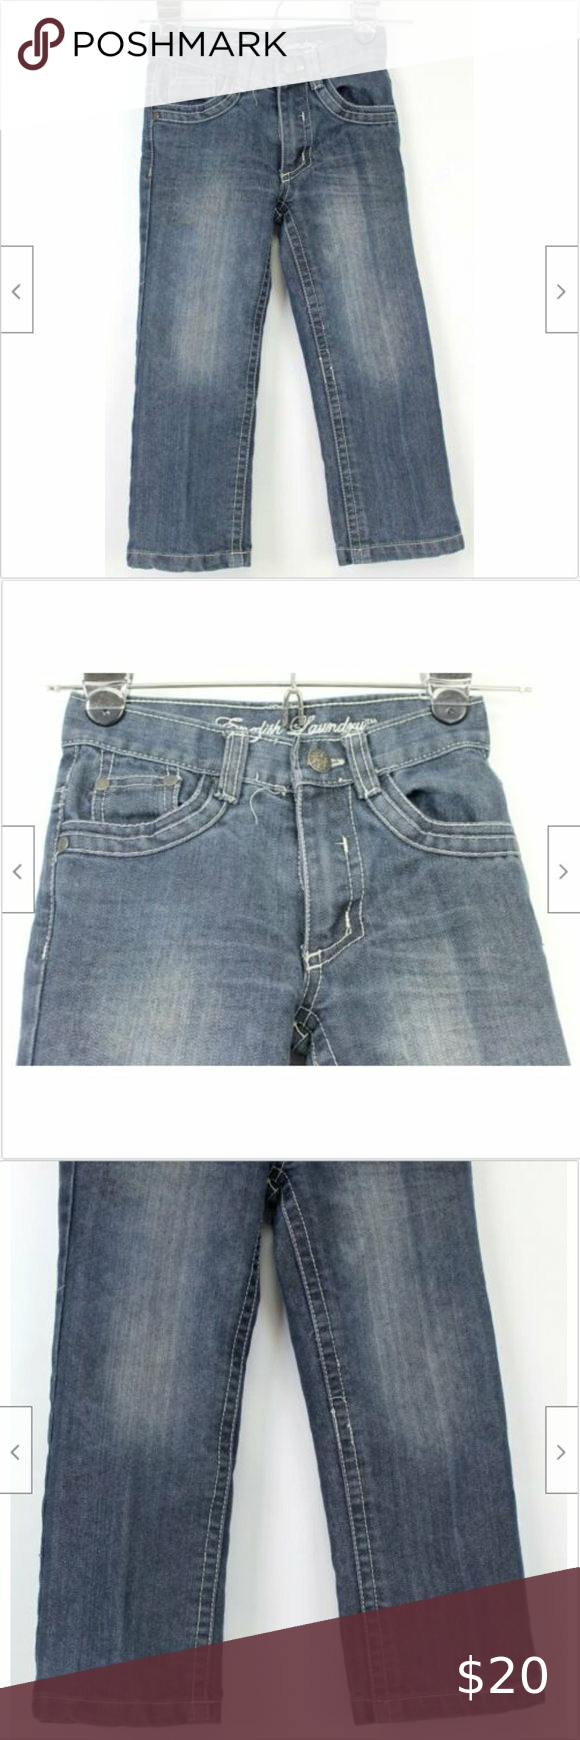 English Laundry Jeans Kids Sz 4 Denim Straight Leg In 2020 With